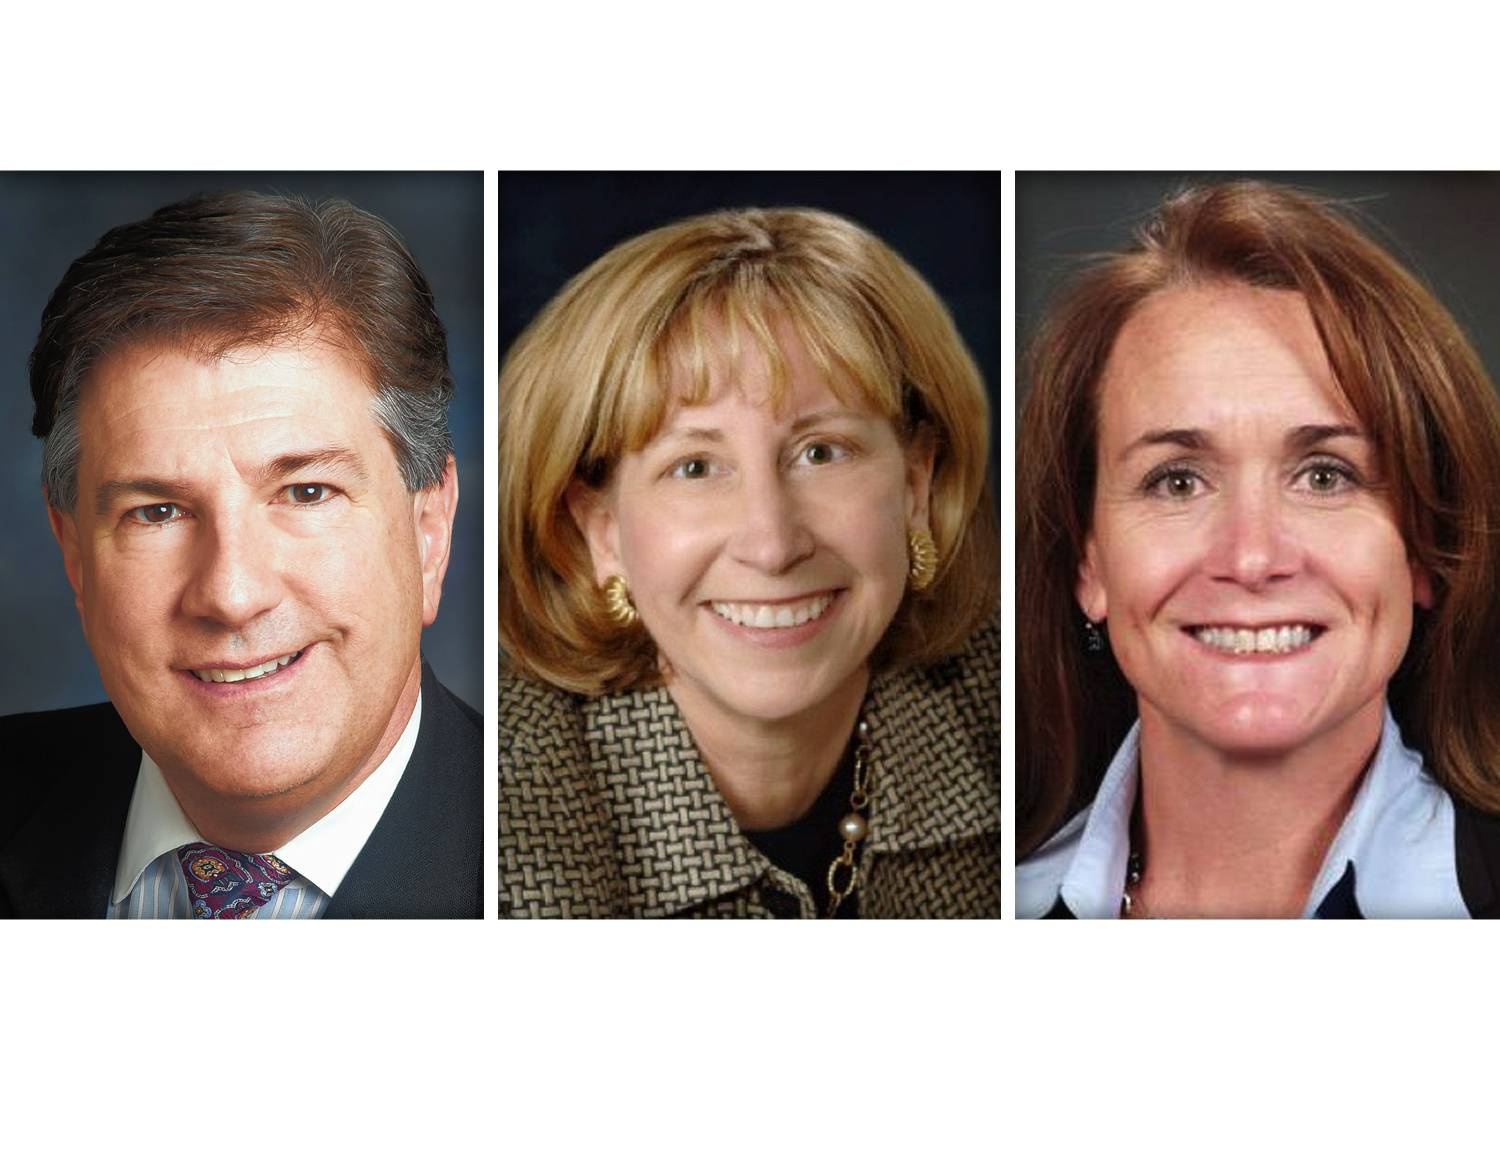 Michael Danforth, Eleanor Sweet McDonnell and Linda Starkey are Republican candidates for the Lake County Board's 17th District seat.